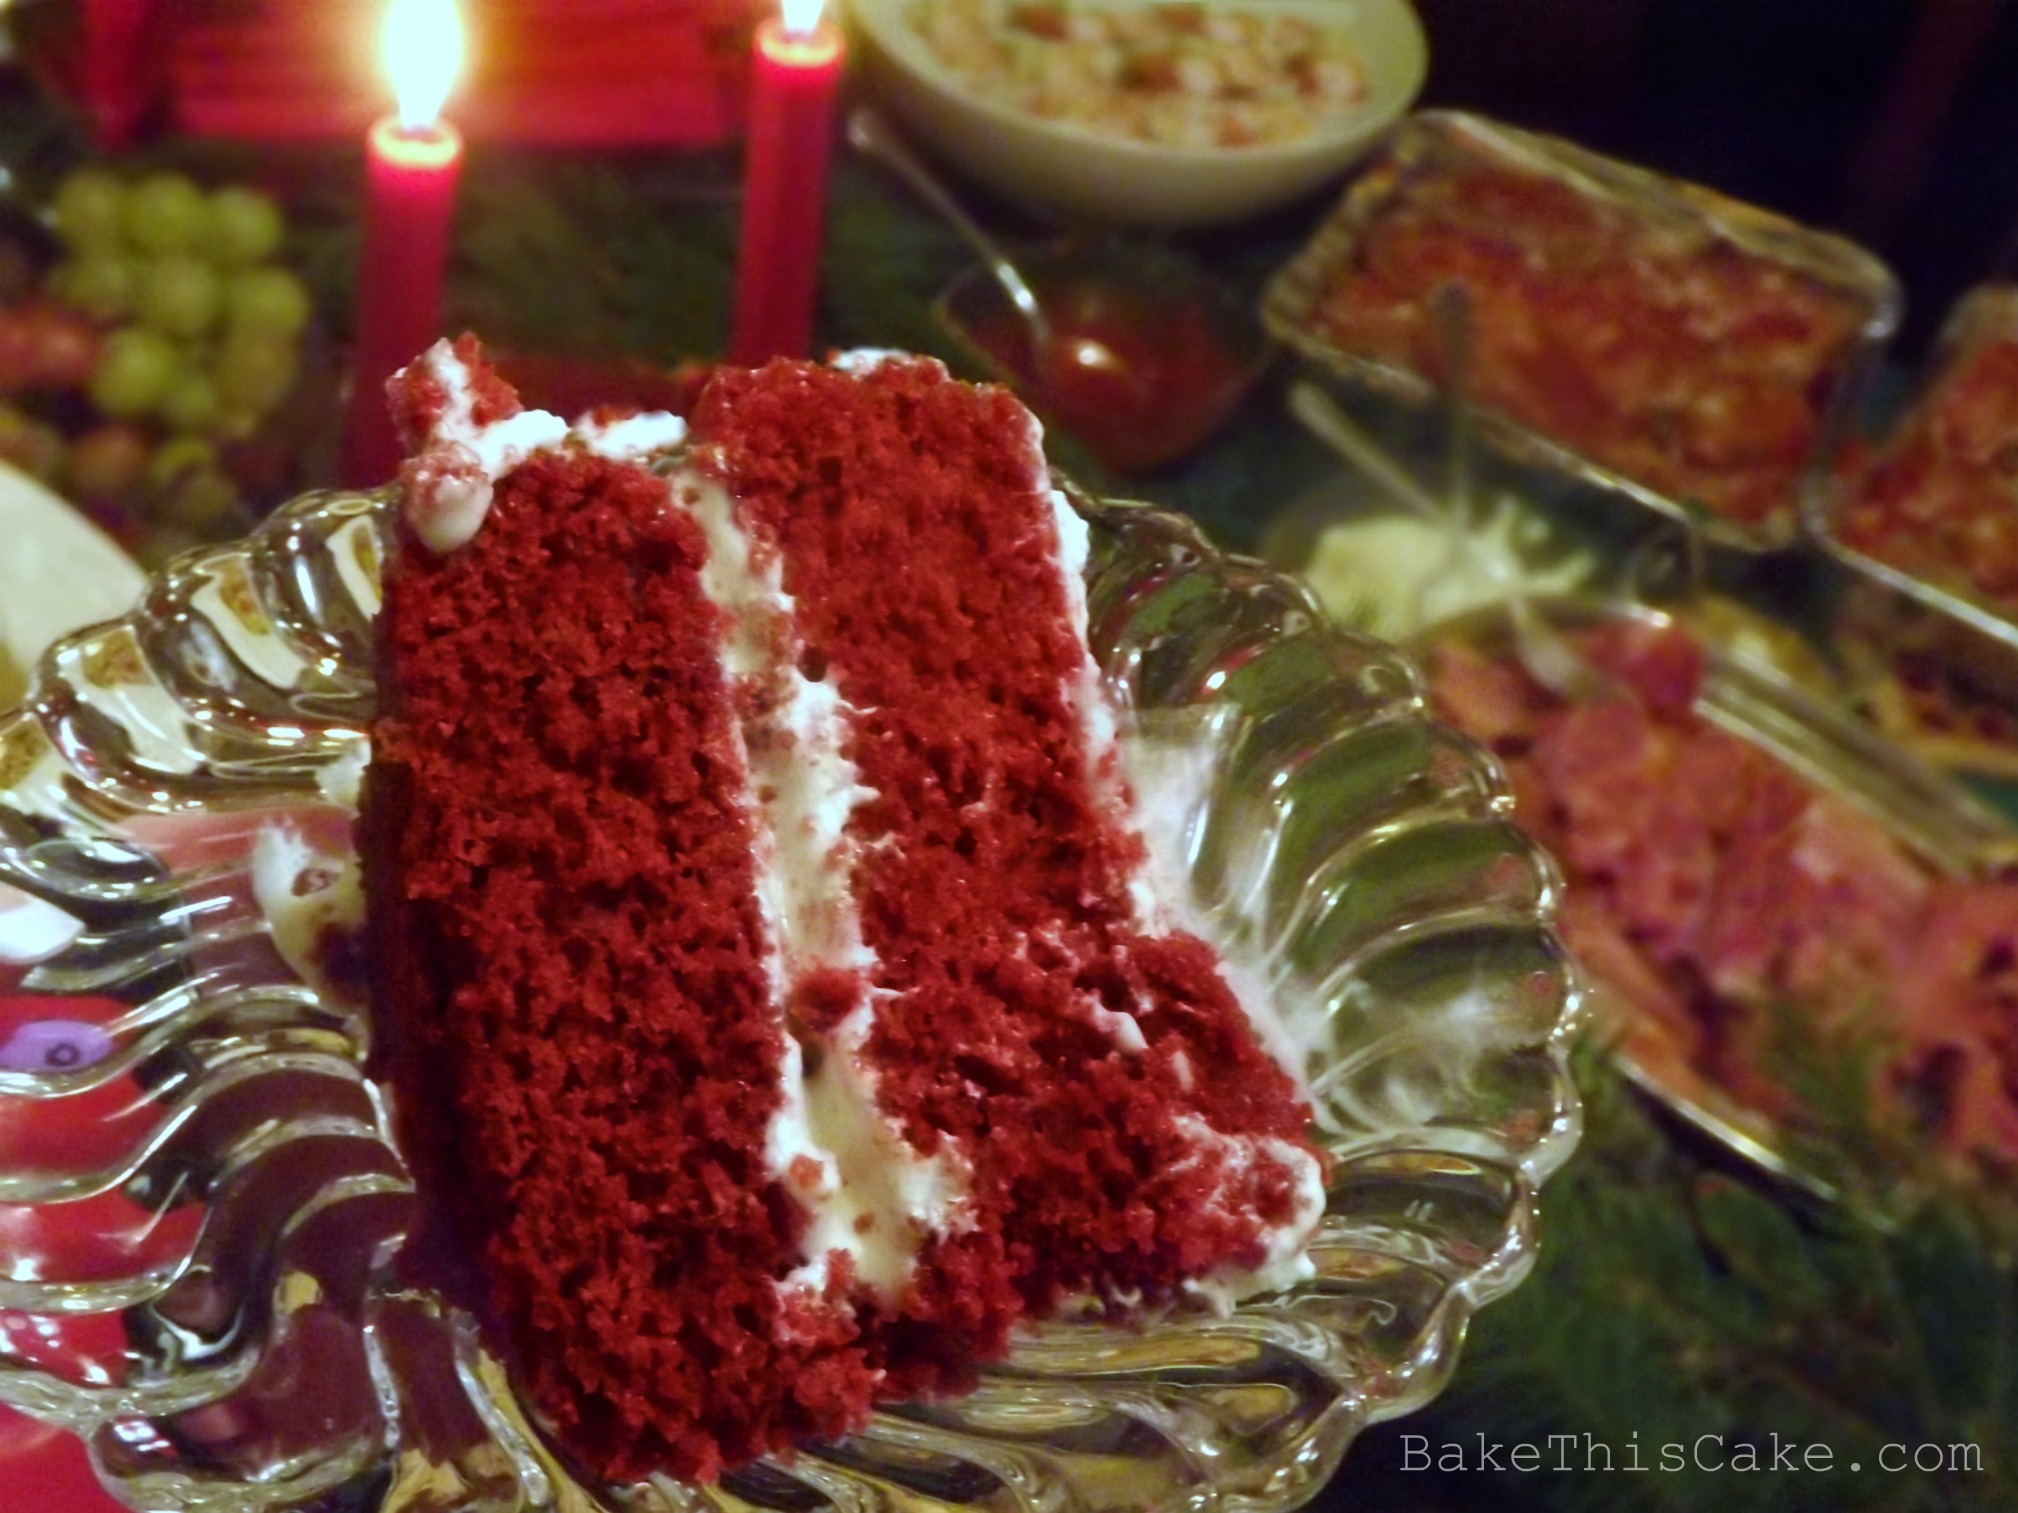 Miss RubieLees Dangerous Red Velvet Cake Recipe with Baby Beets